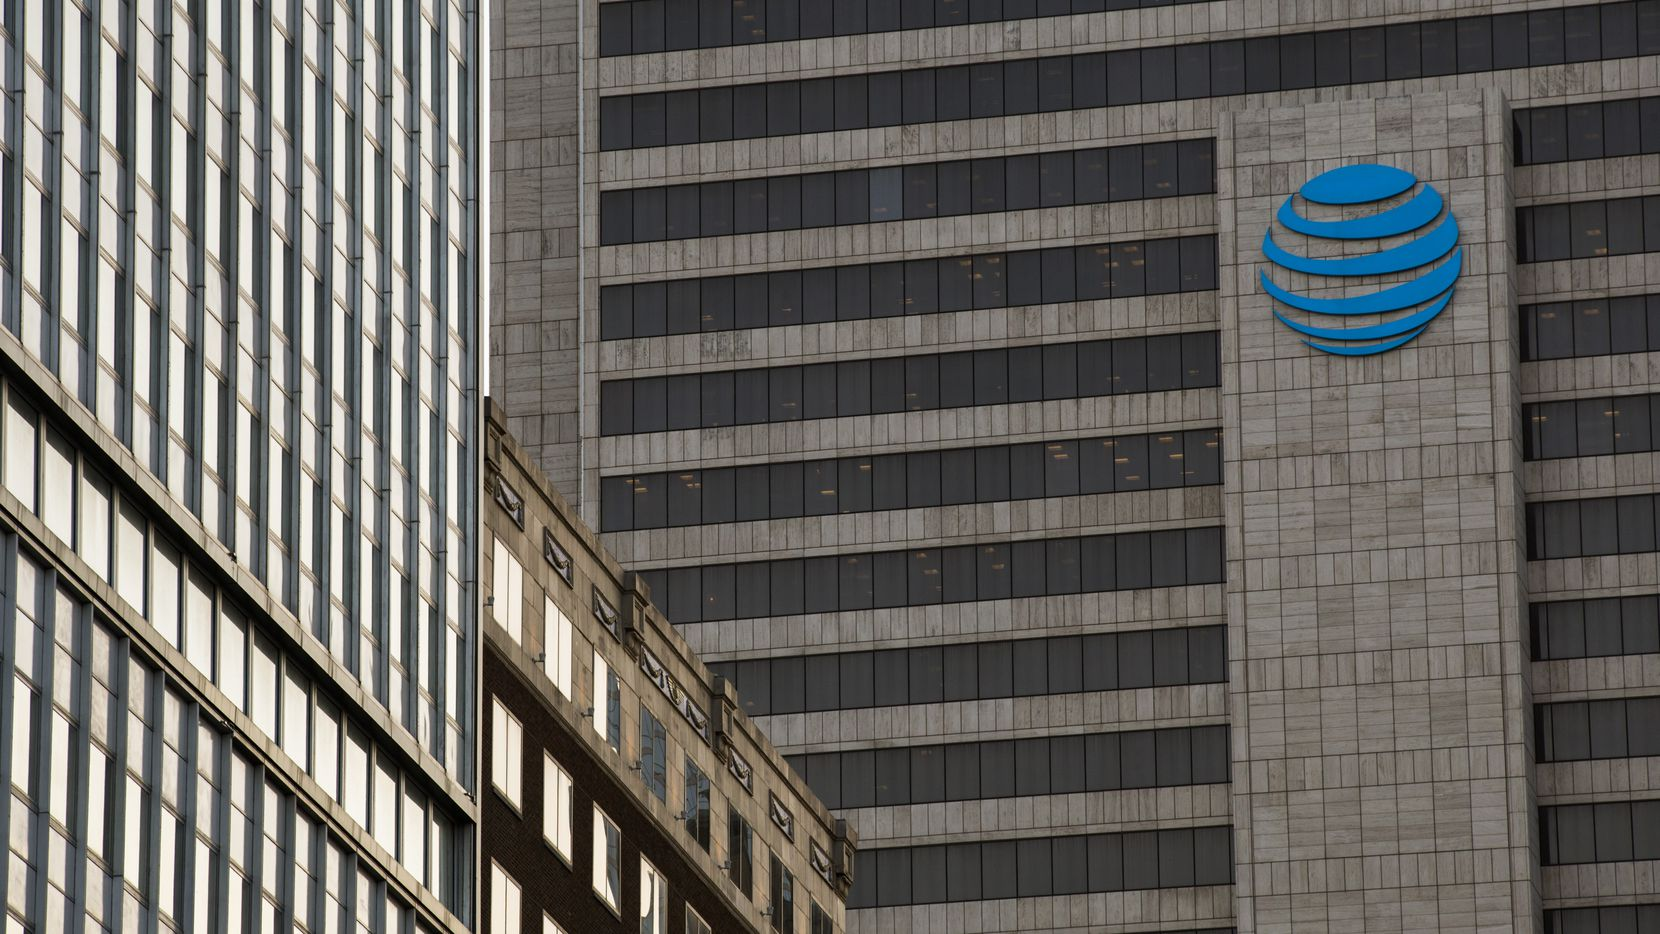 AT&T is one of dozens of companies asking banks for new credit lines to raise liquidity as the commercial paper market remains strained.